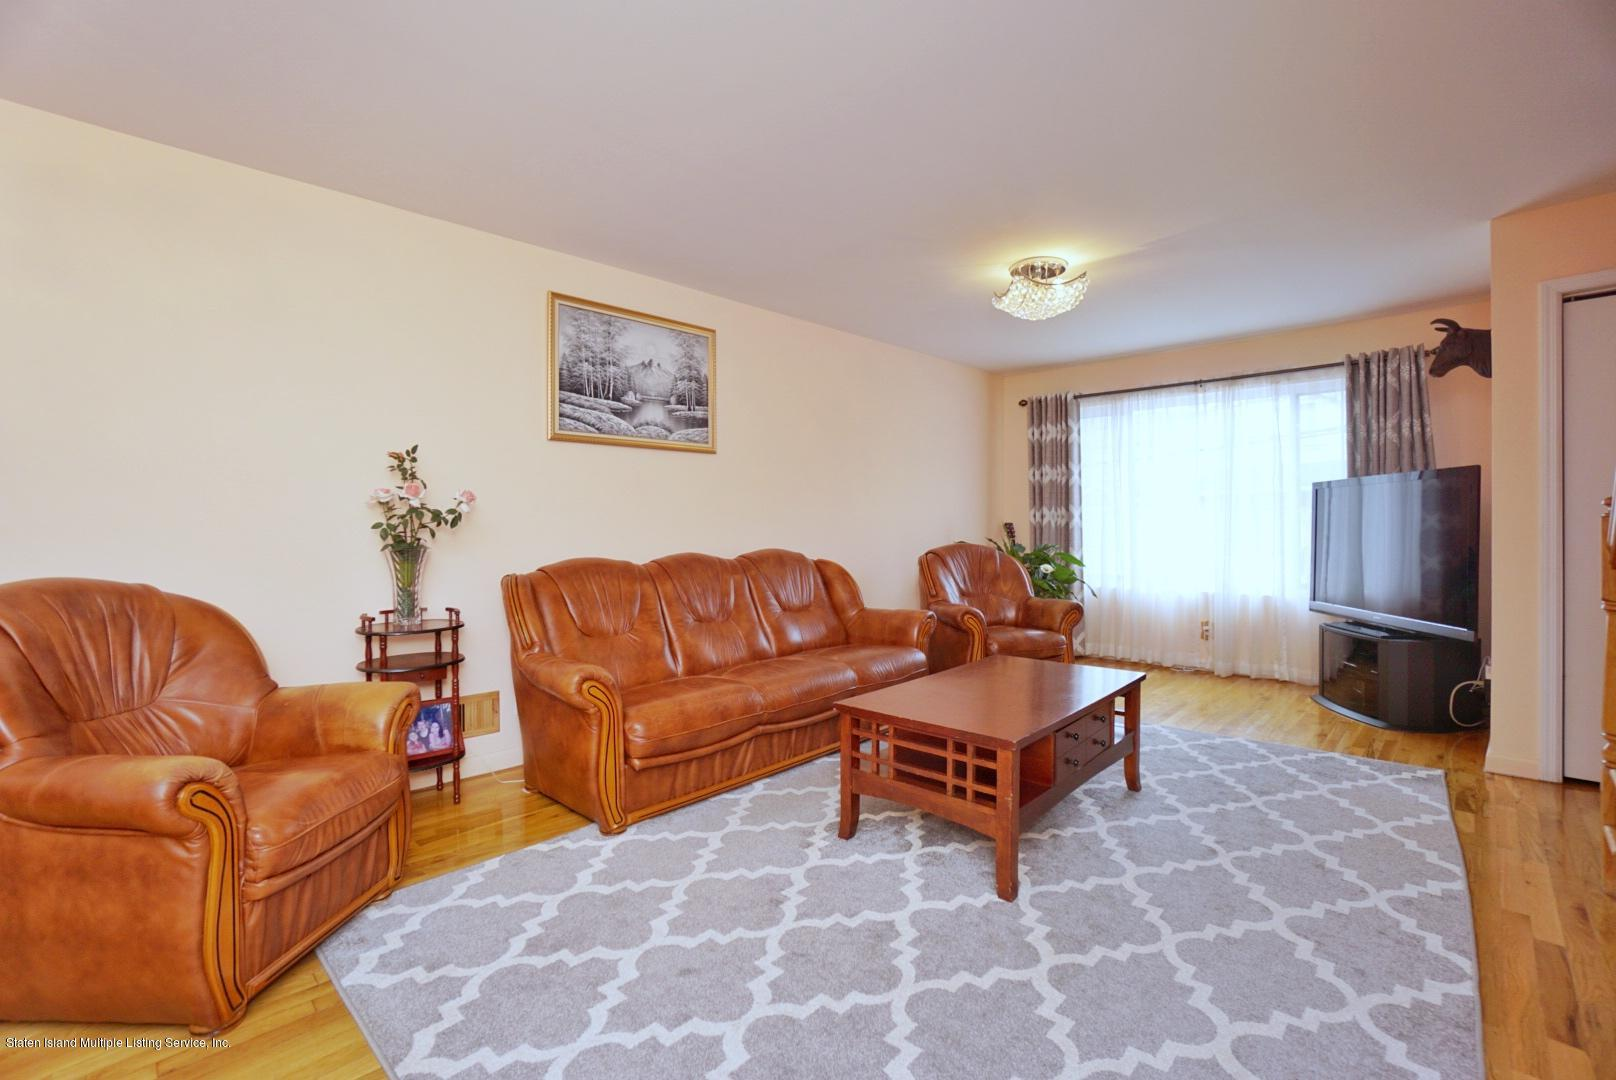 Single Family - Attached 30 Cranberry Court  Staten Island, NY 10309, MLS-1135421-8